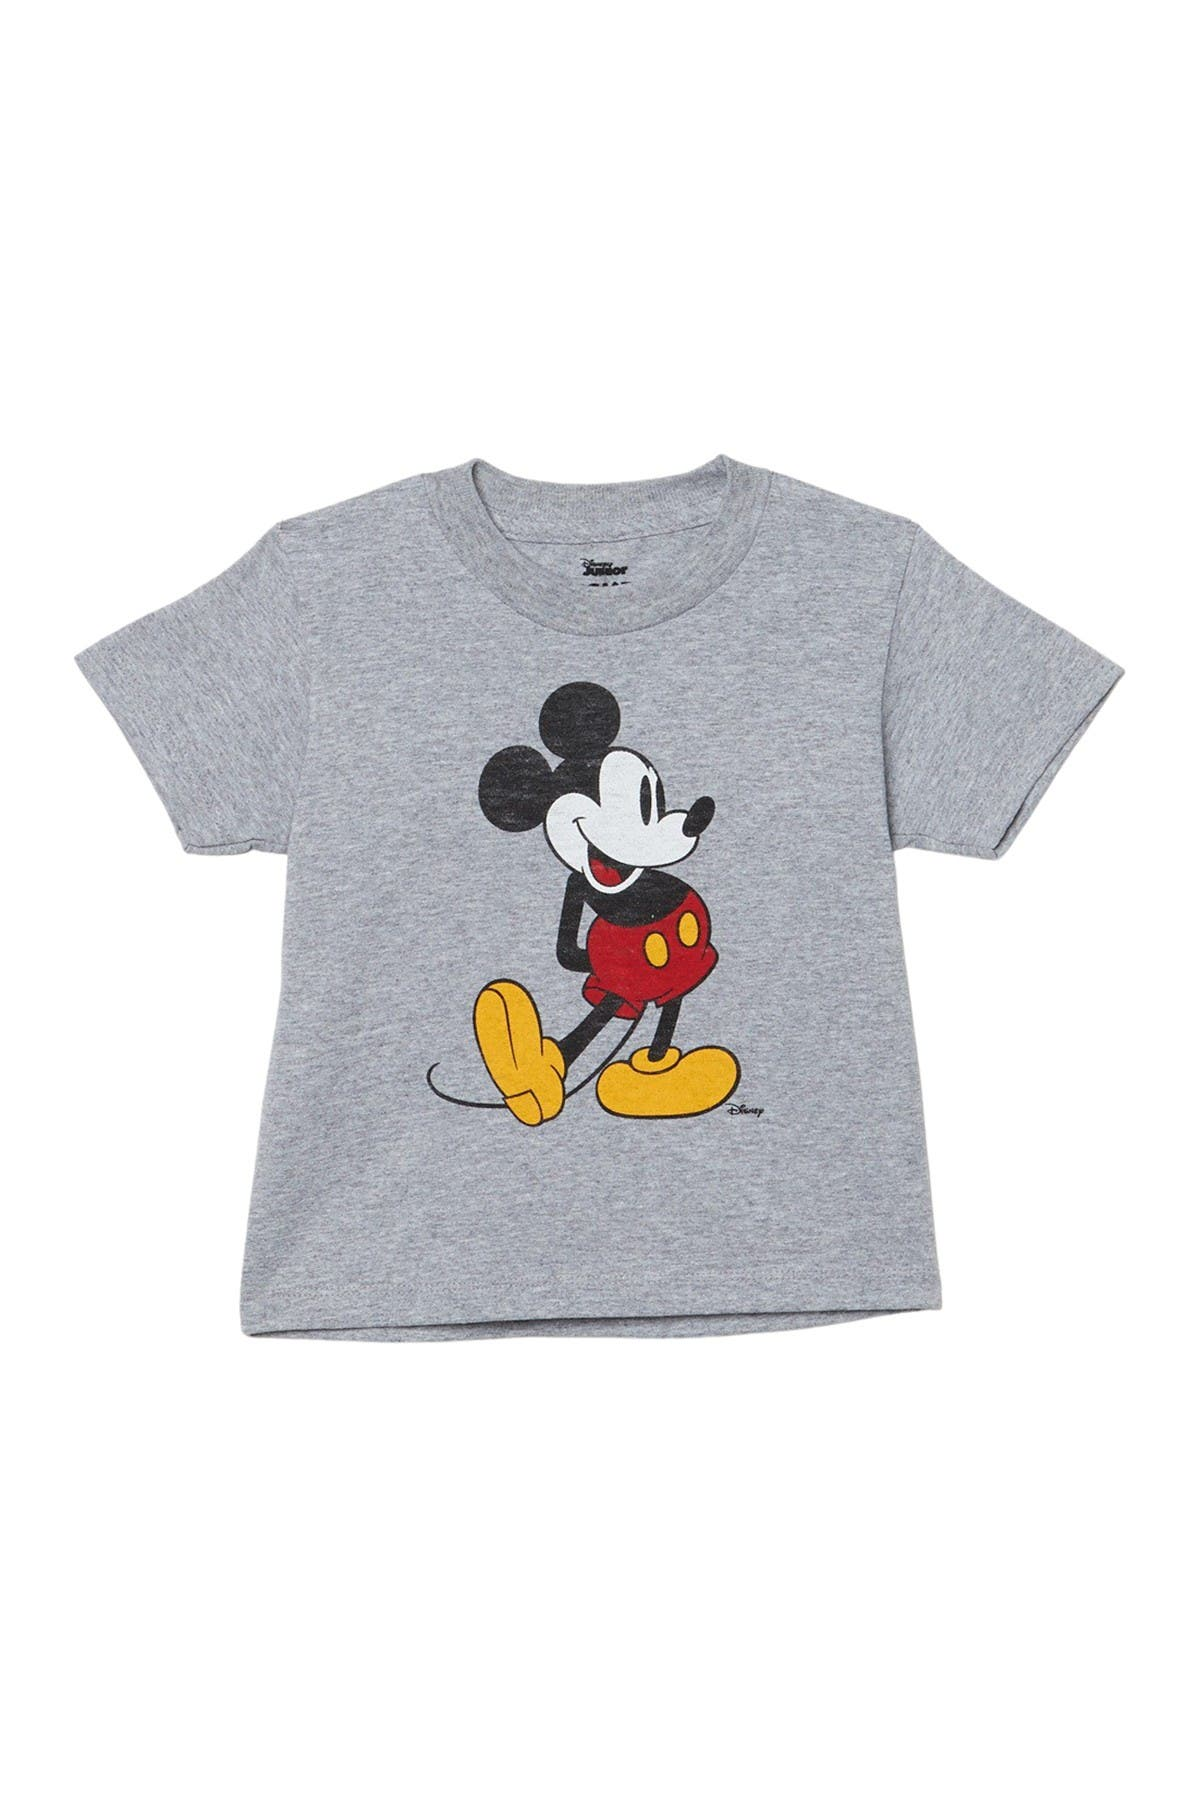 Image of JEM Classic Mickey T-Shirt